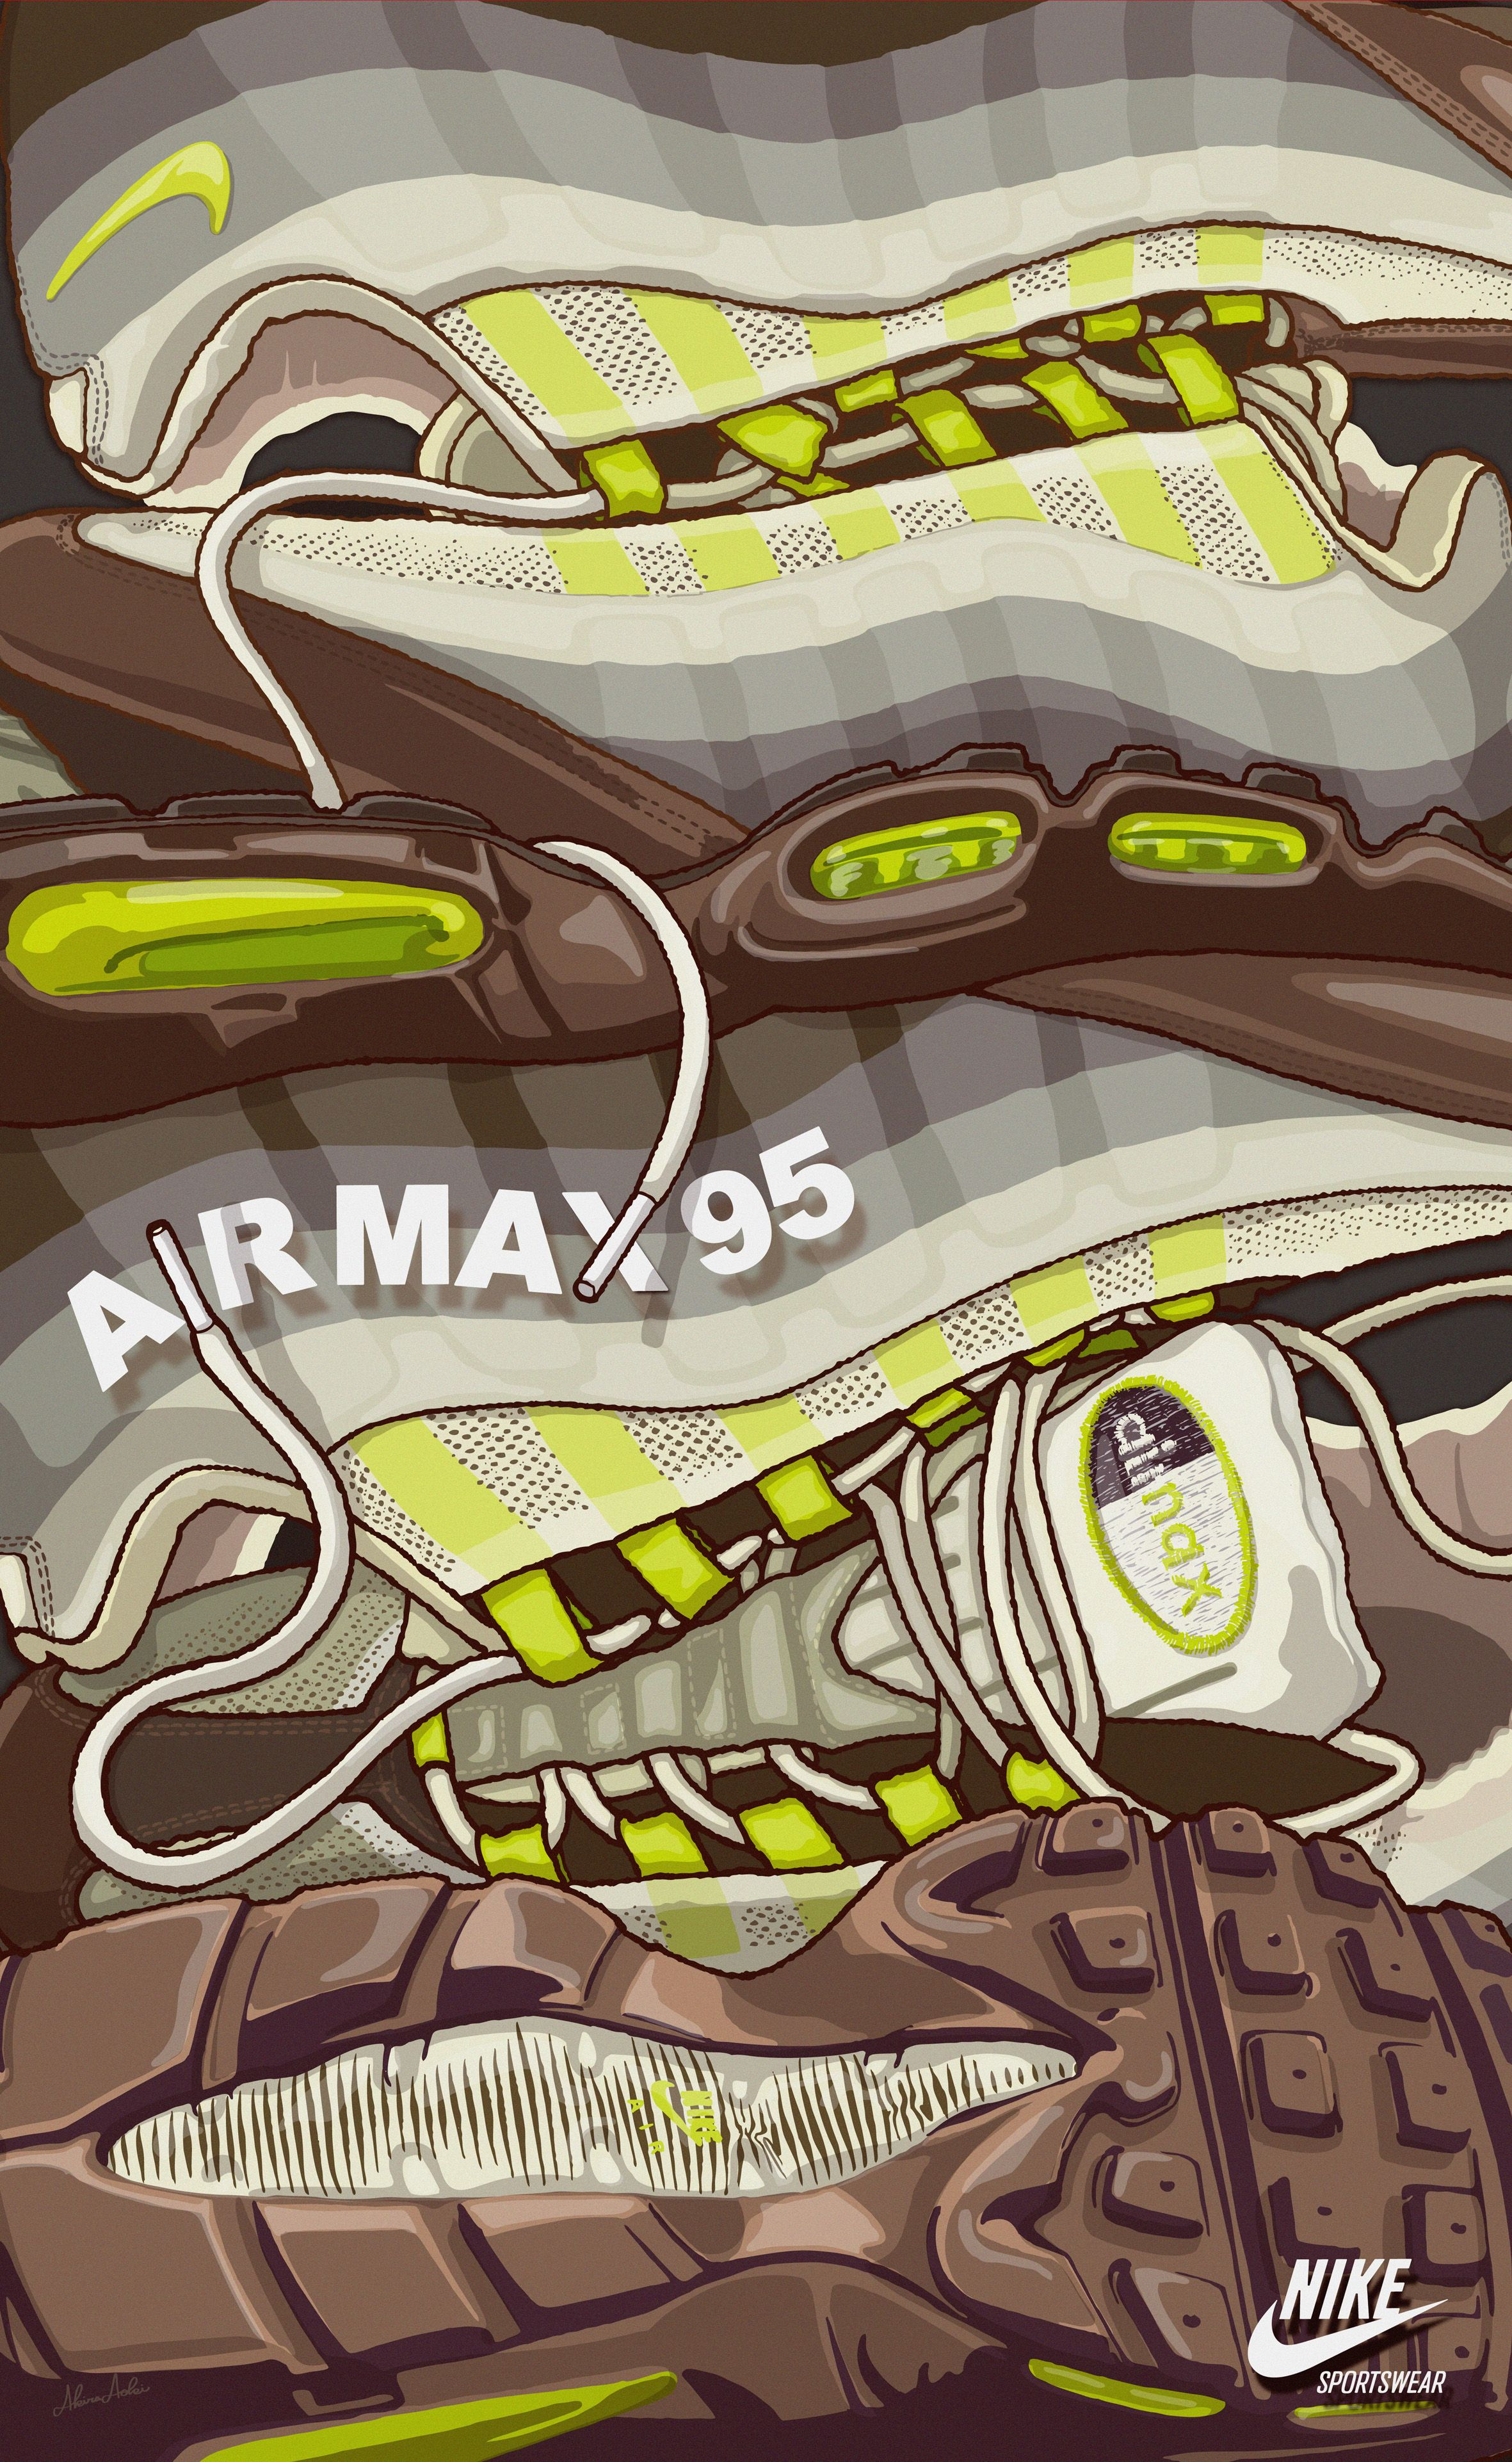 reputable site 928d2 b46b7 NIKE AIR MAX 95 NO-SEW poster art @NIKE SHOP